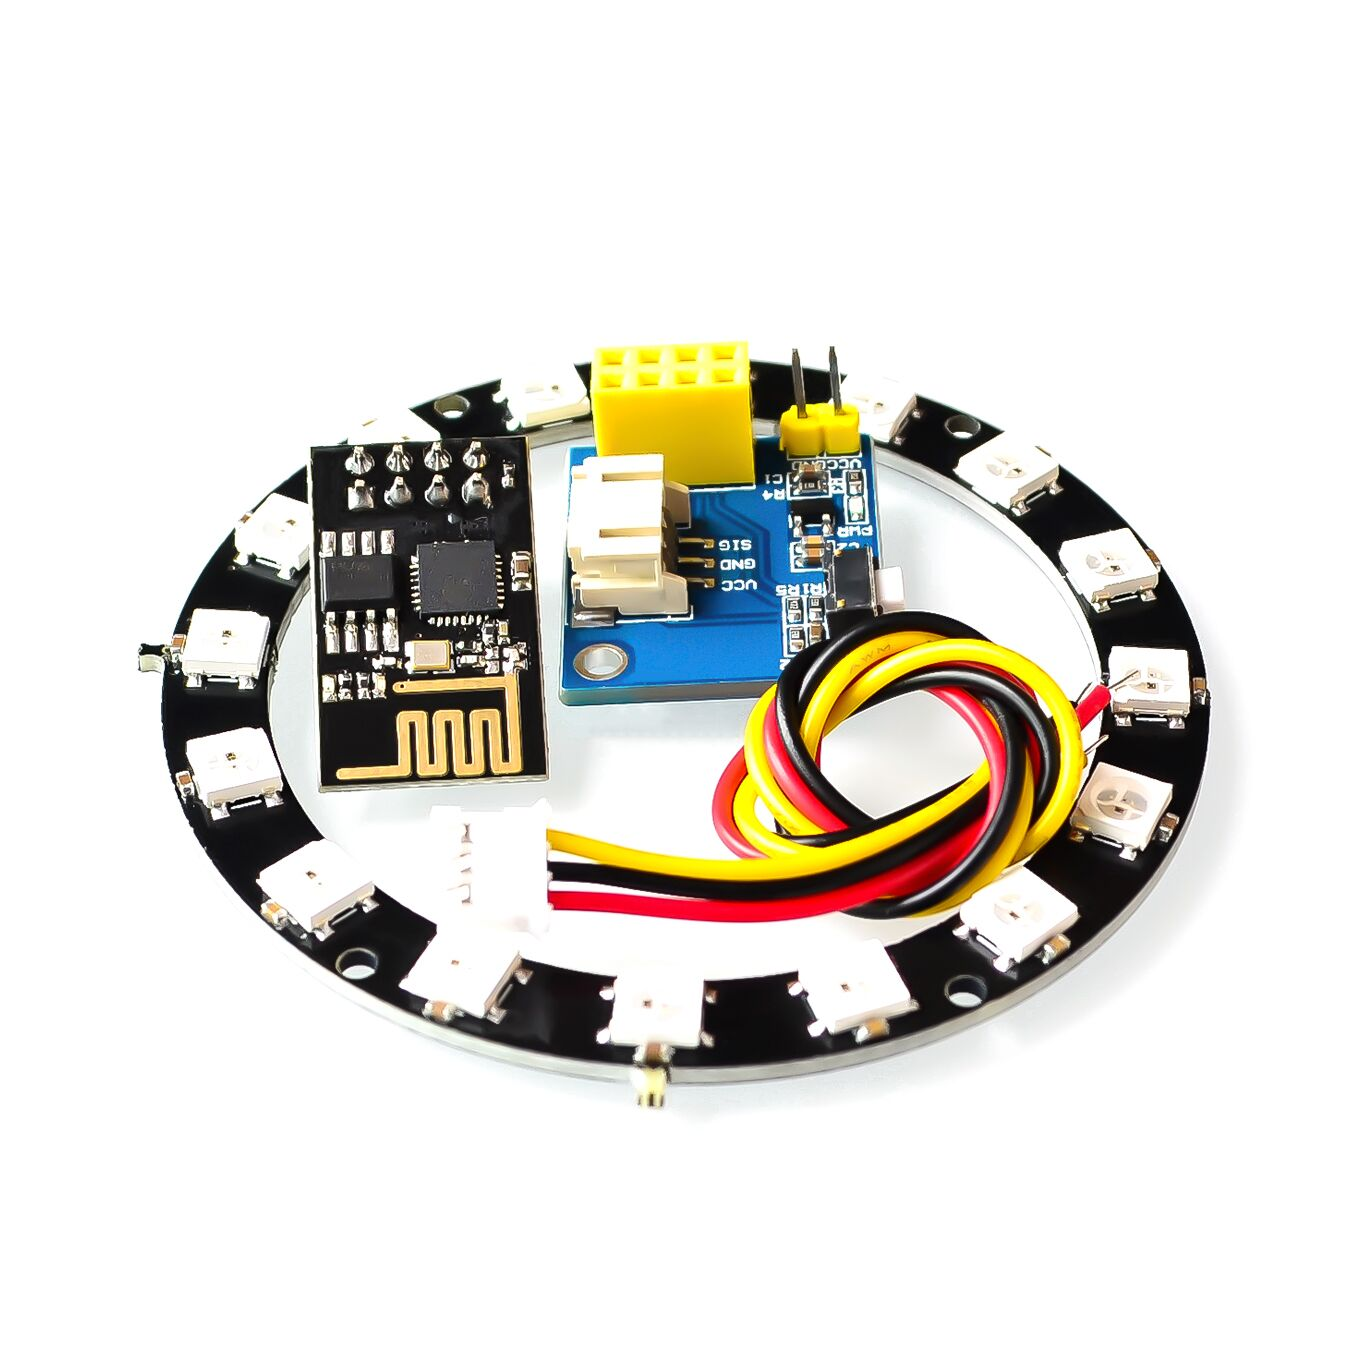 Default Title - ESP8266 ESP01 ESP-01 RGB LED Controller Adpater WIFI Module for Arduino IDE WS2812 WS2812B 5050 16 Bits Light Ring Christmas DIY